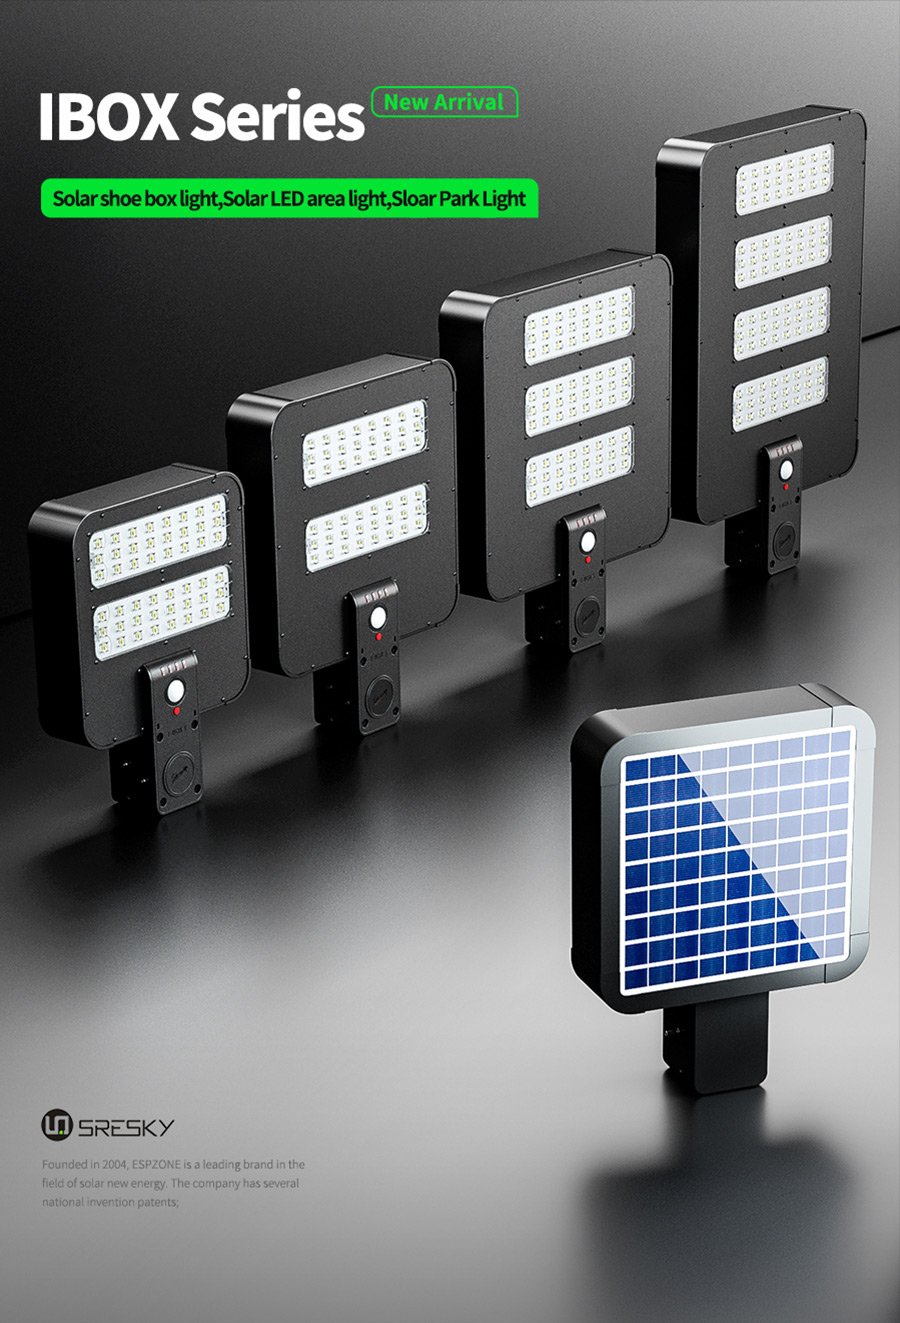 sresky new product IBOX series led area lighting solar shoe box light with patent design